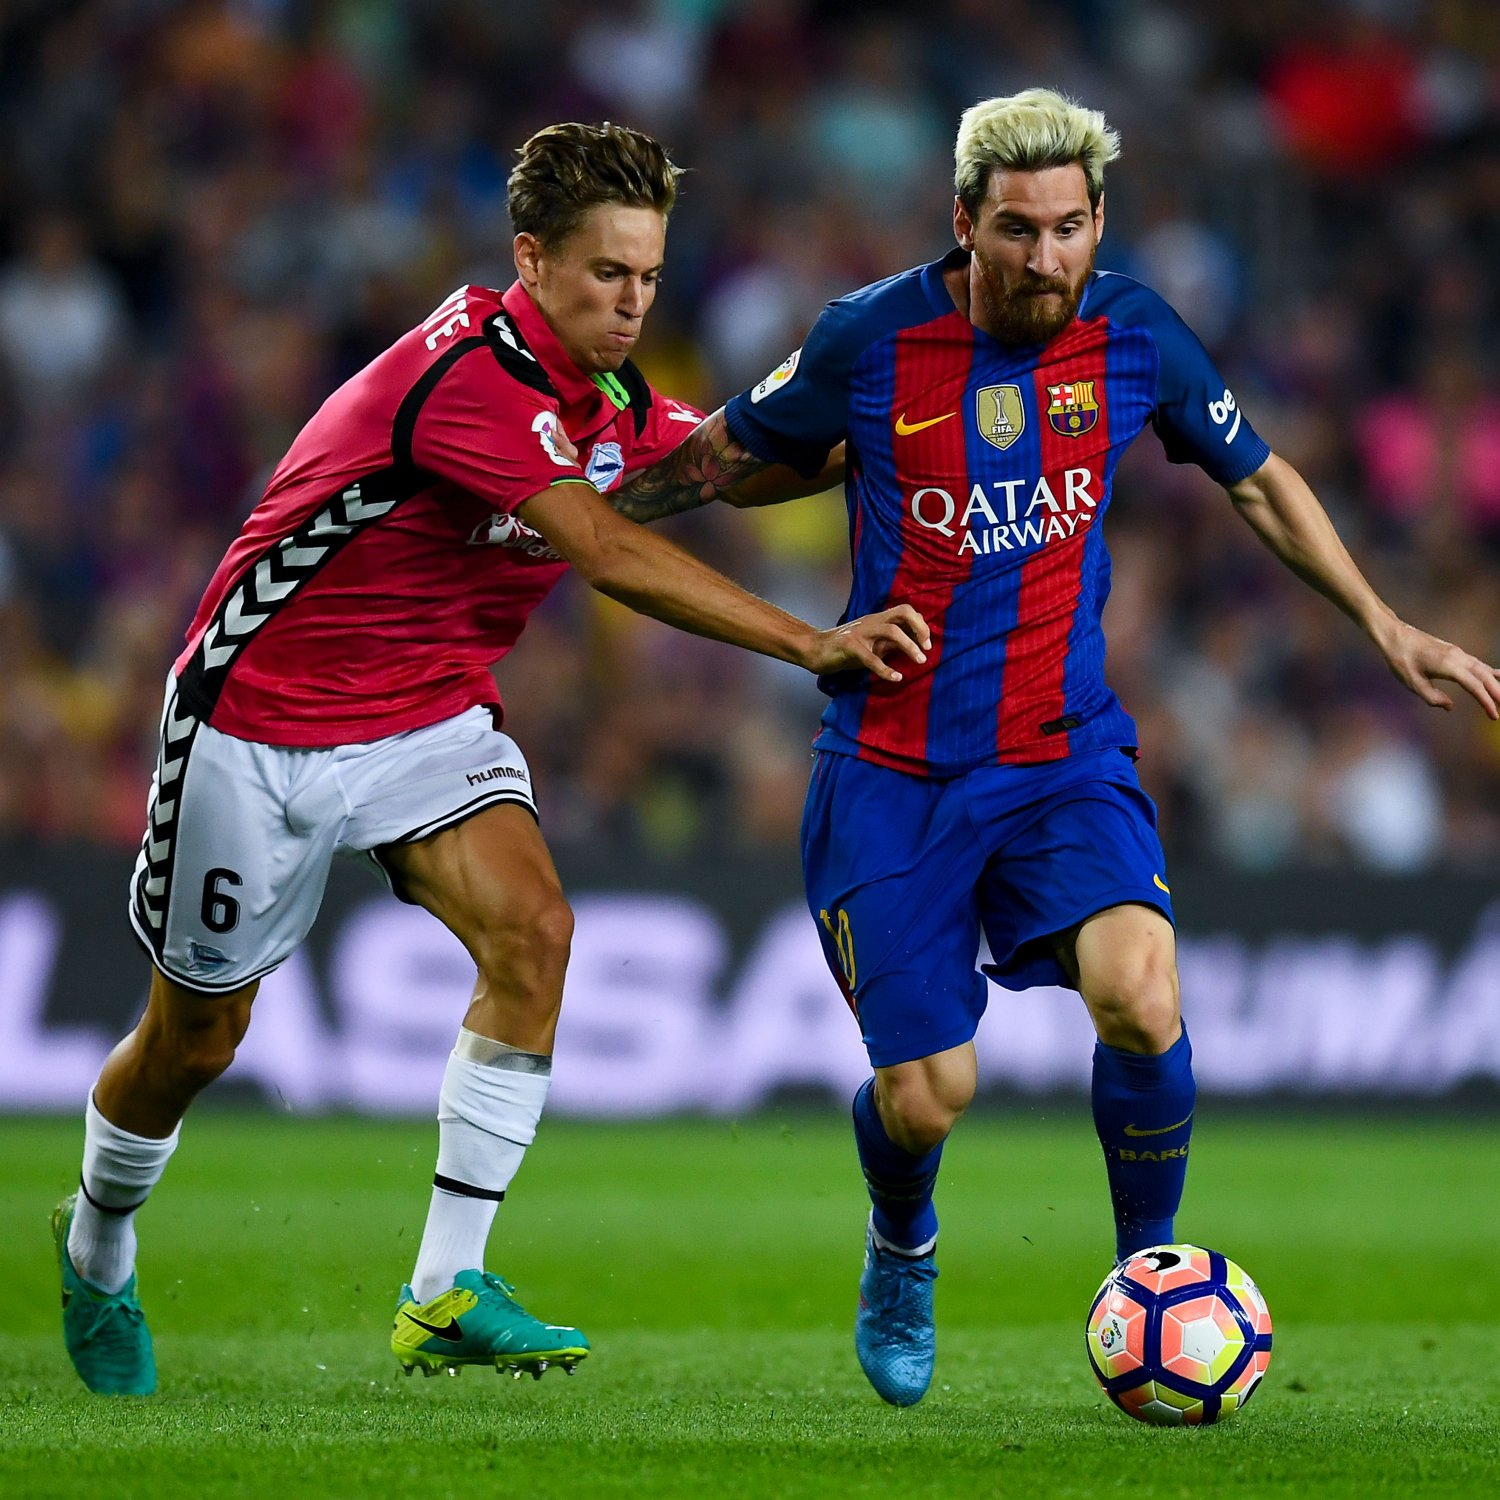 Real Madrid Transfer News: Latest Rumours on Marcos Llorente and Mesut Ozil